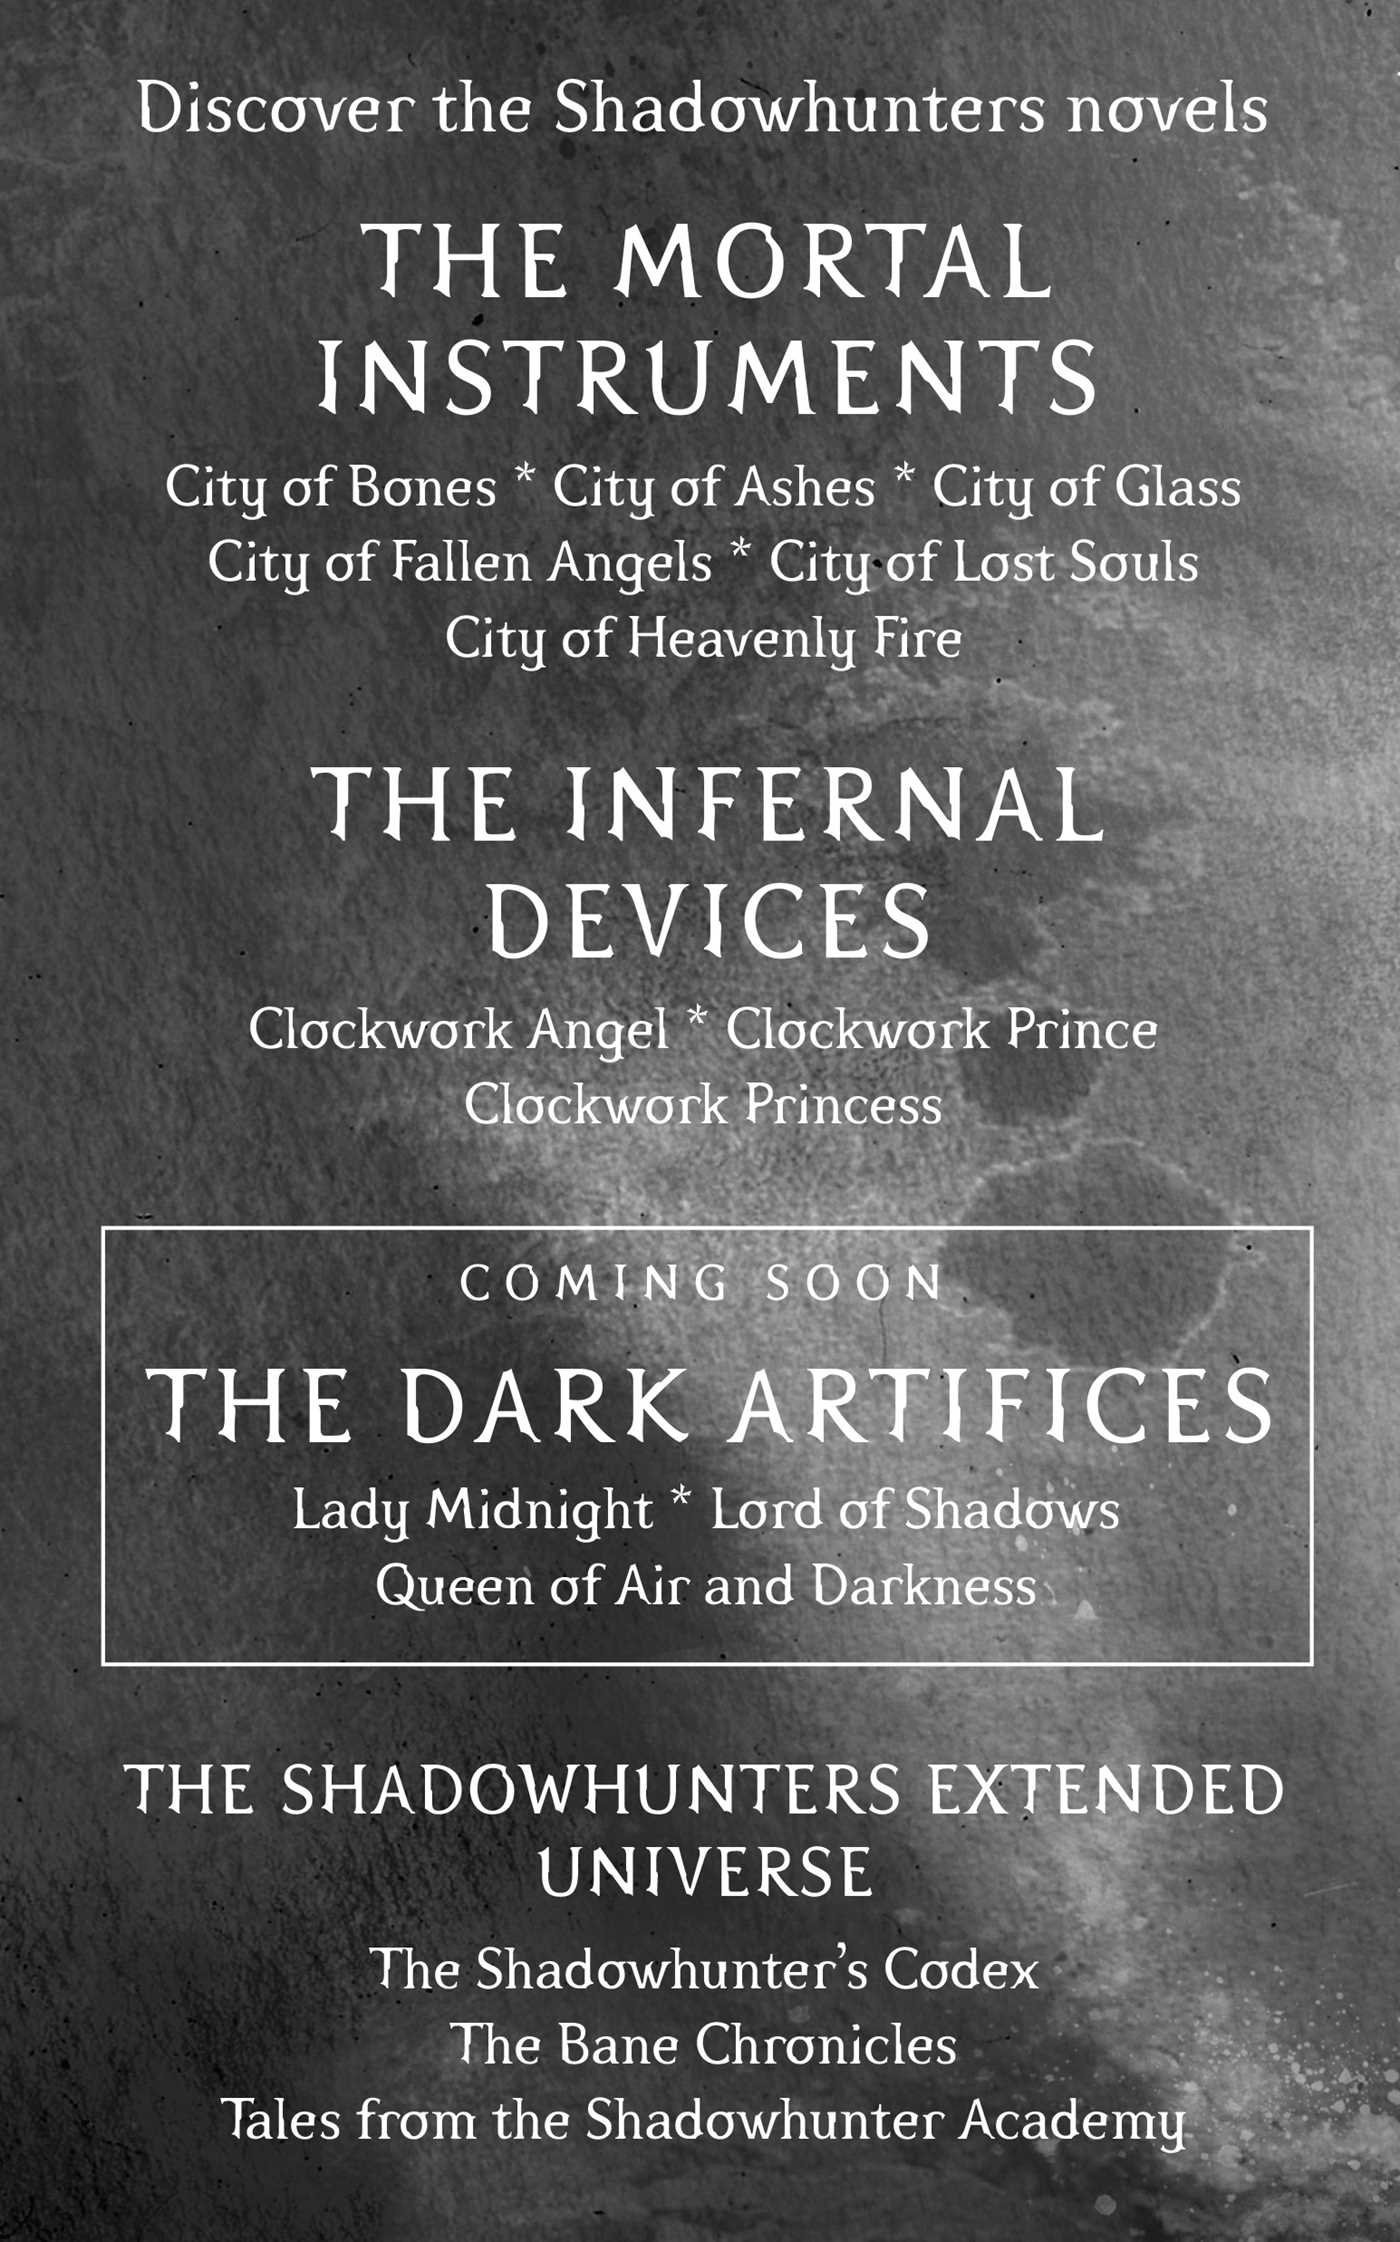 Amazon city of bones the mortal instruments 9781481455923 amazon city of bones the mortal instruments 9781481455923 cassandra clare books fandeluxe Gallery